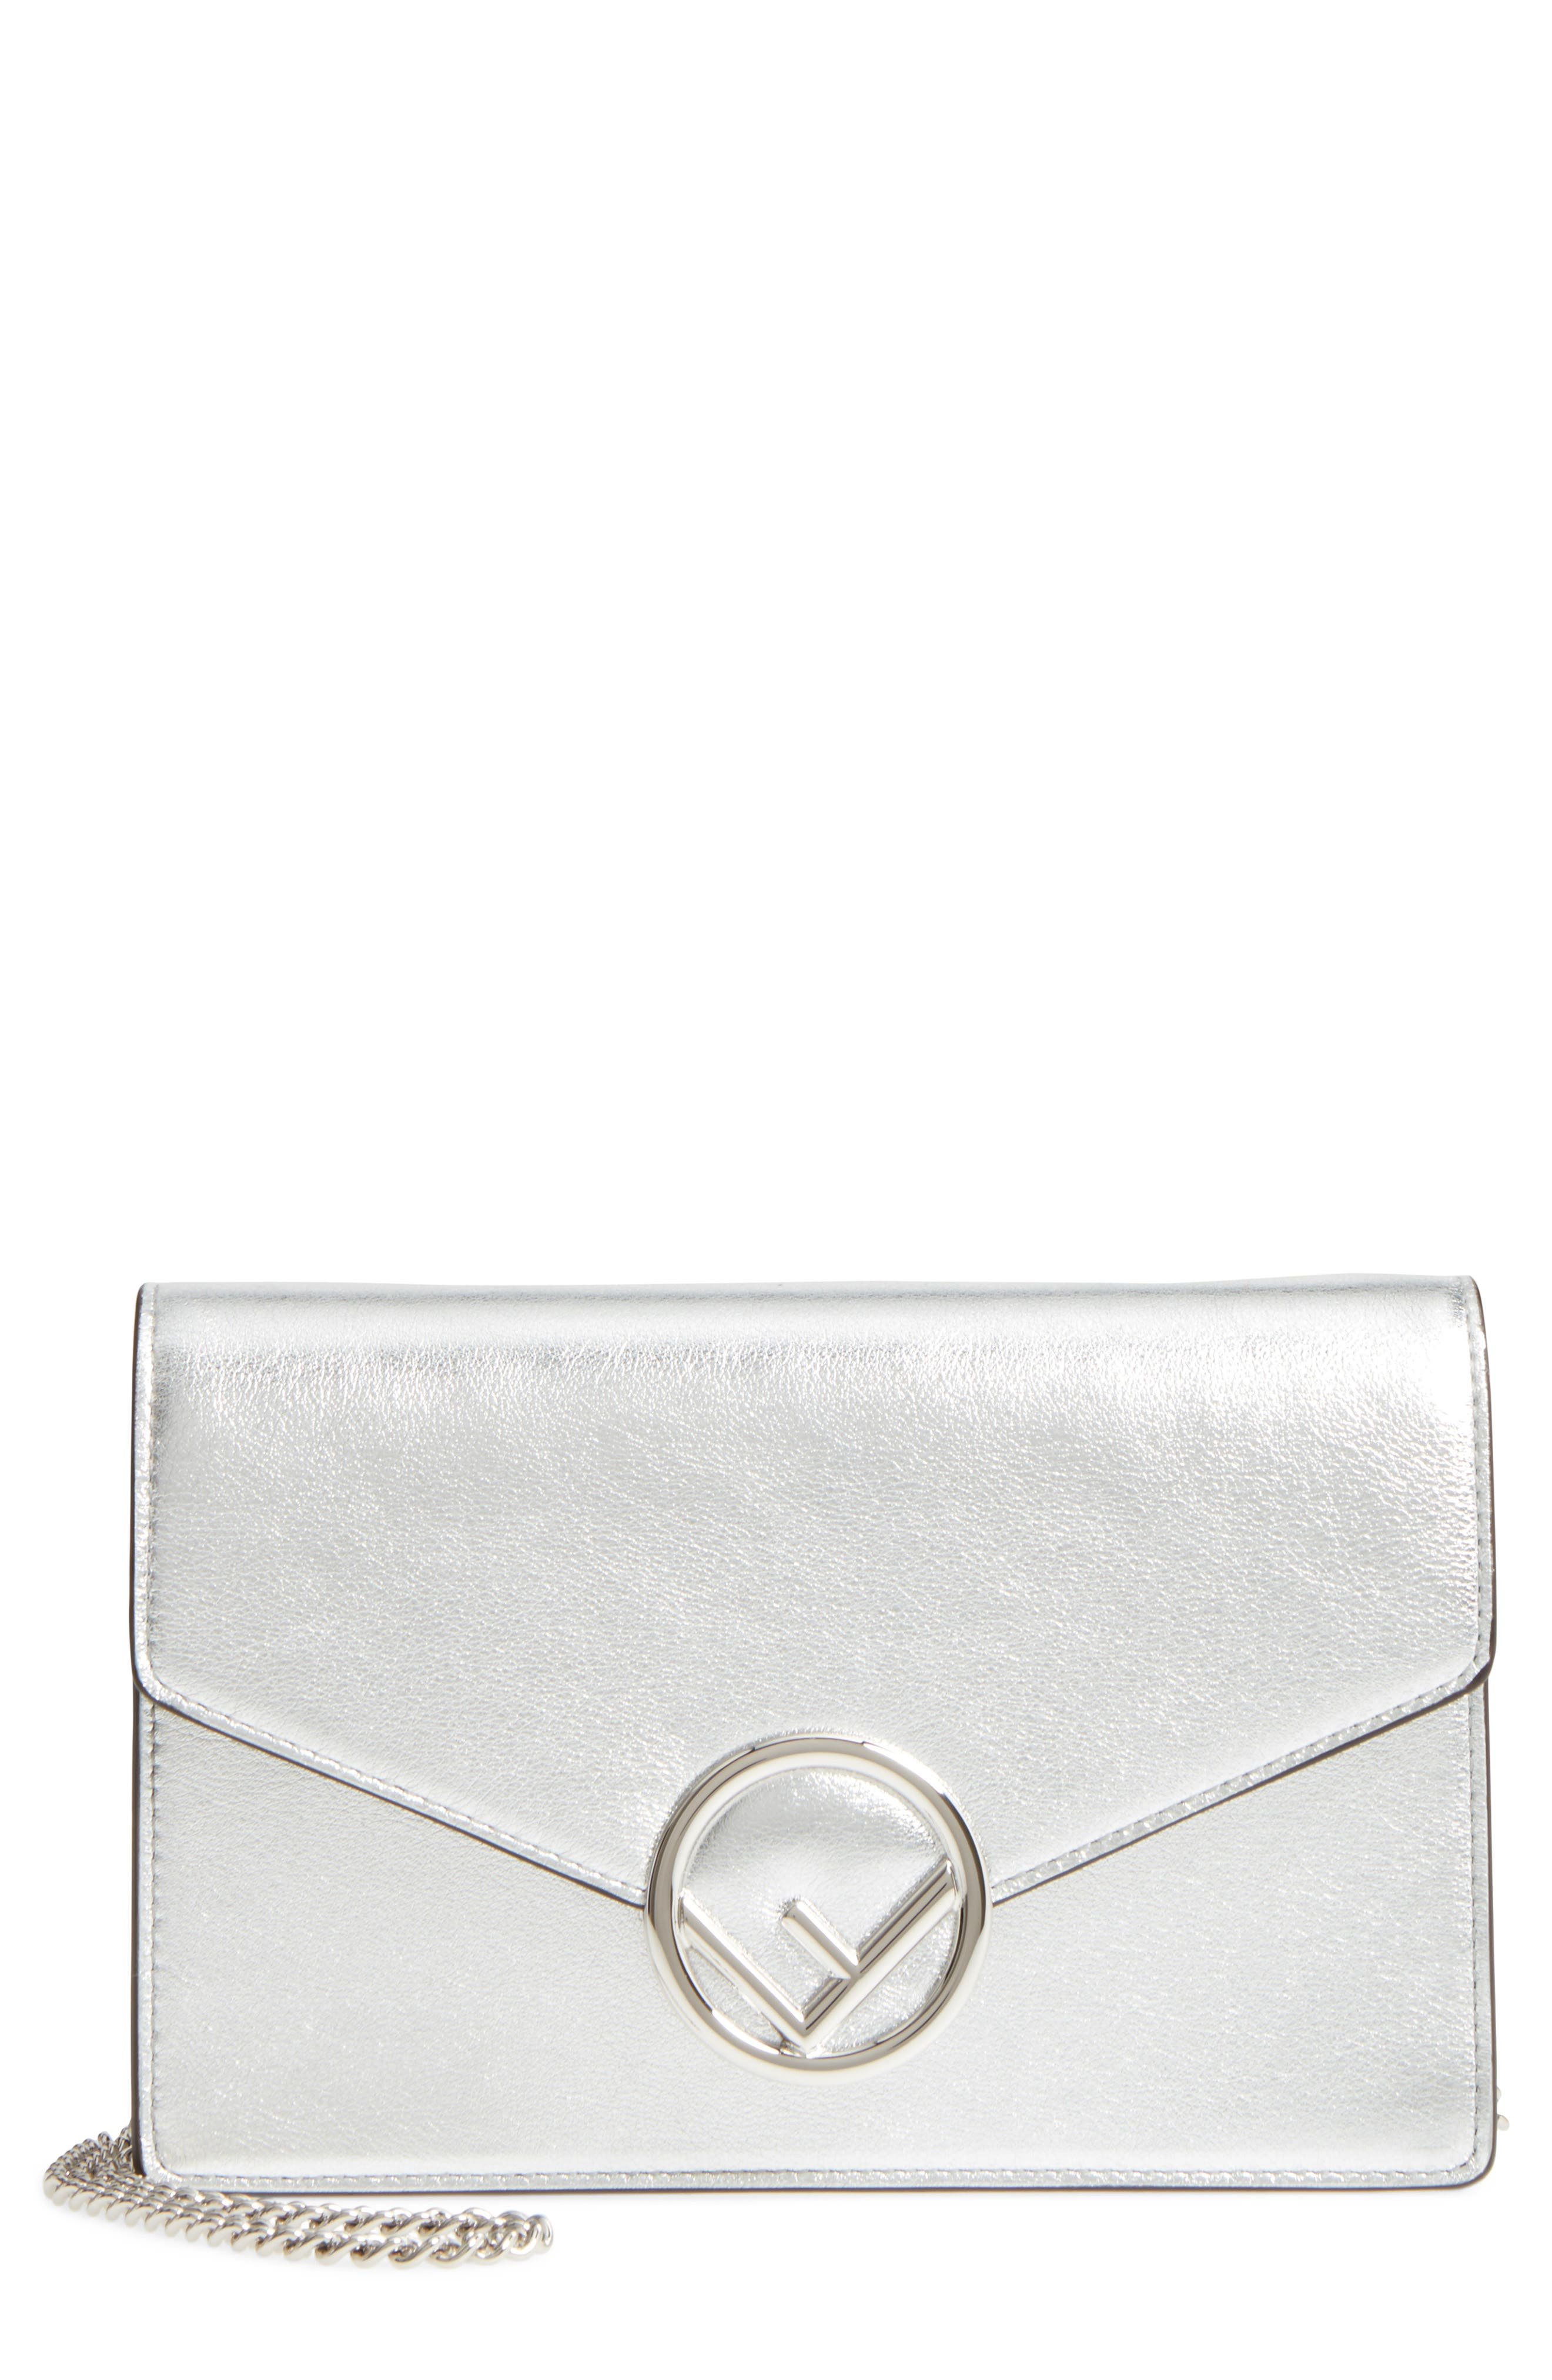 Main Image - Fendi Liberty Logo Calfskin Leather Wallet on a Chain